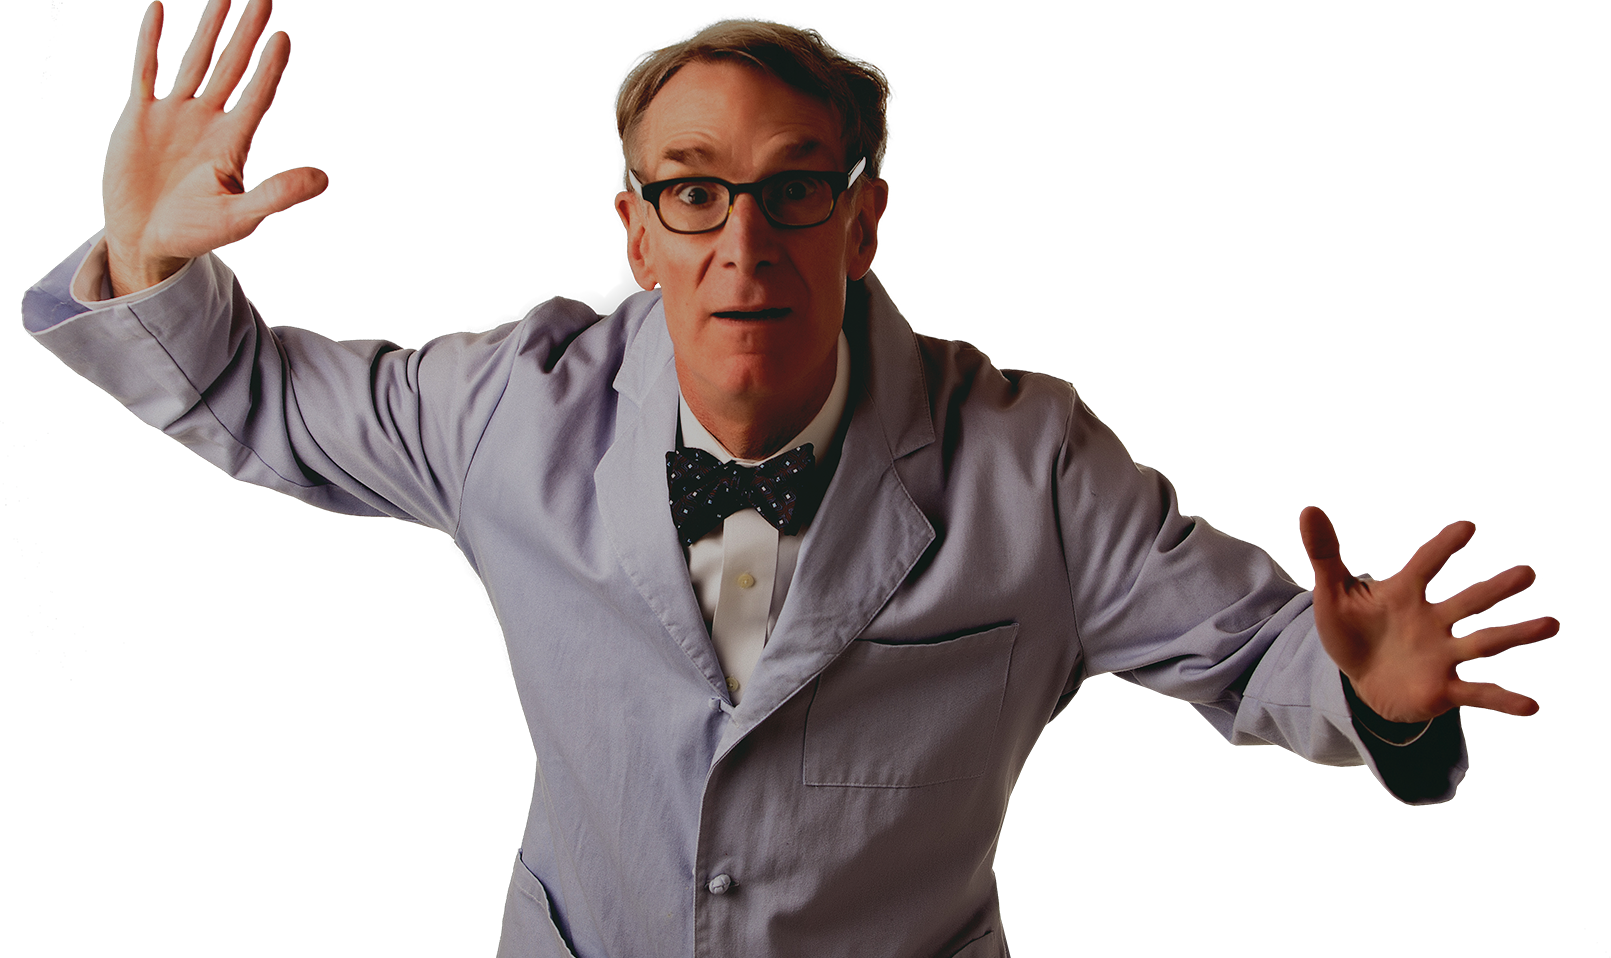 Bill nye the science guy png. Paleo diet